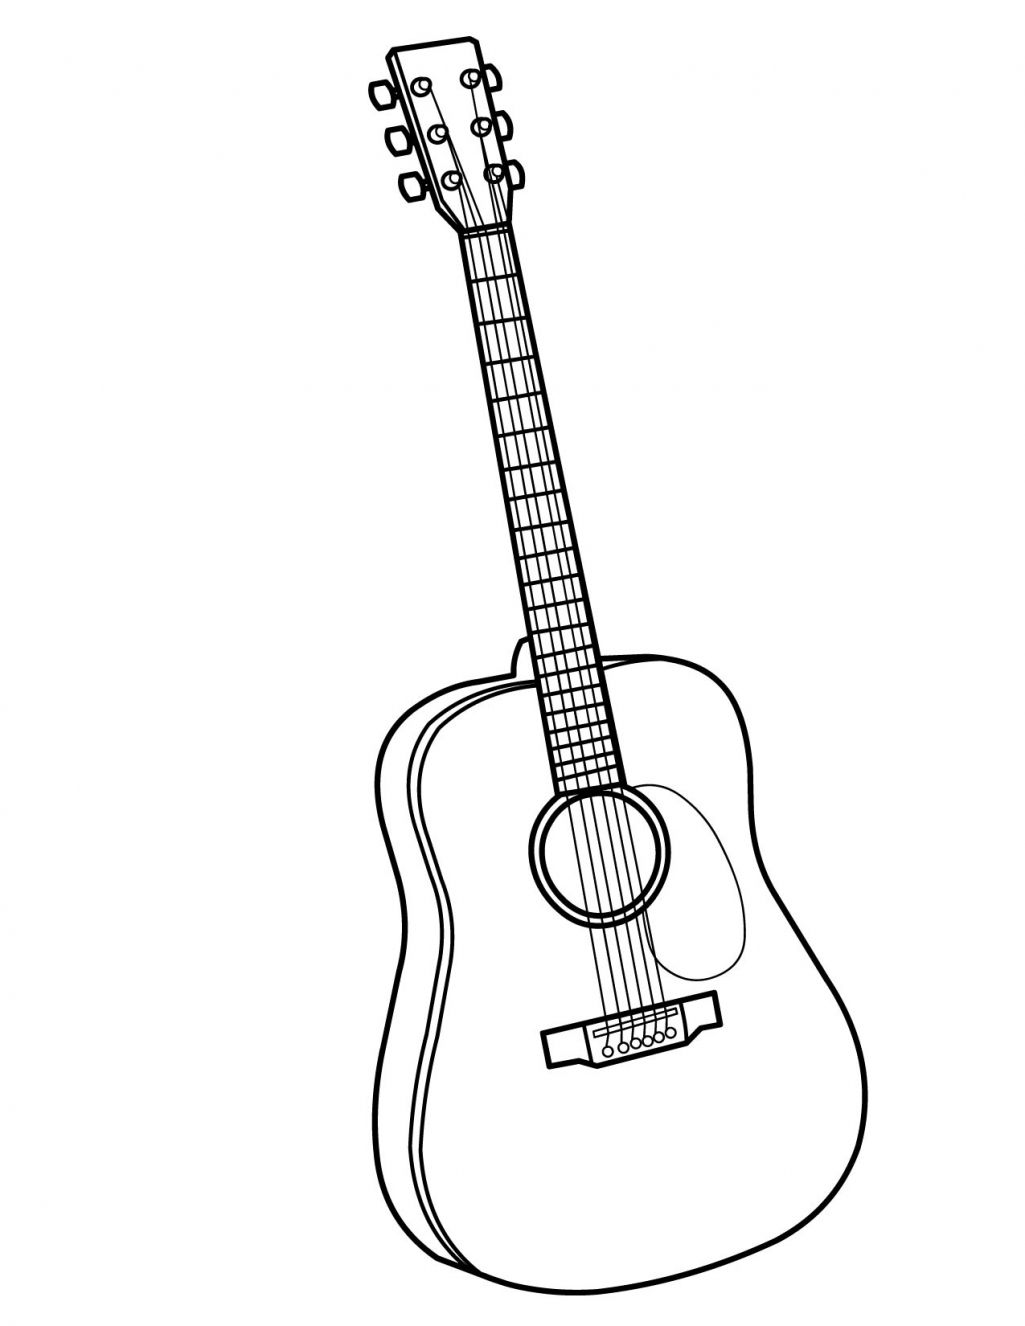 free printable coloring pages of musical instruments gutair colouring pages printable colouring pictures of coloring musical printable instruments free of pages